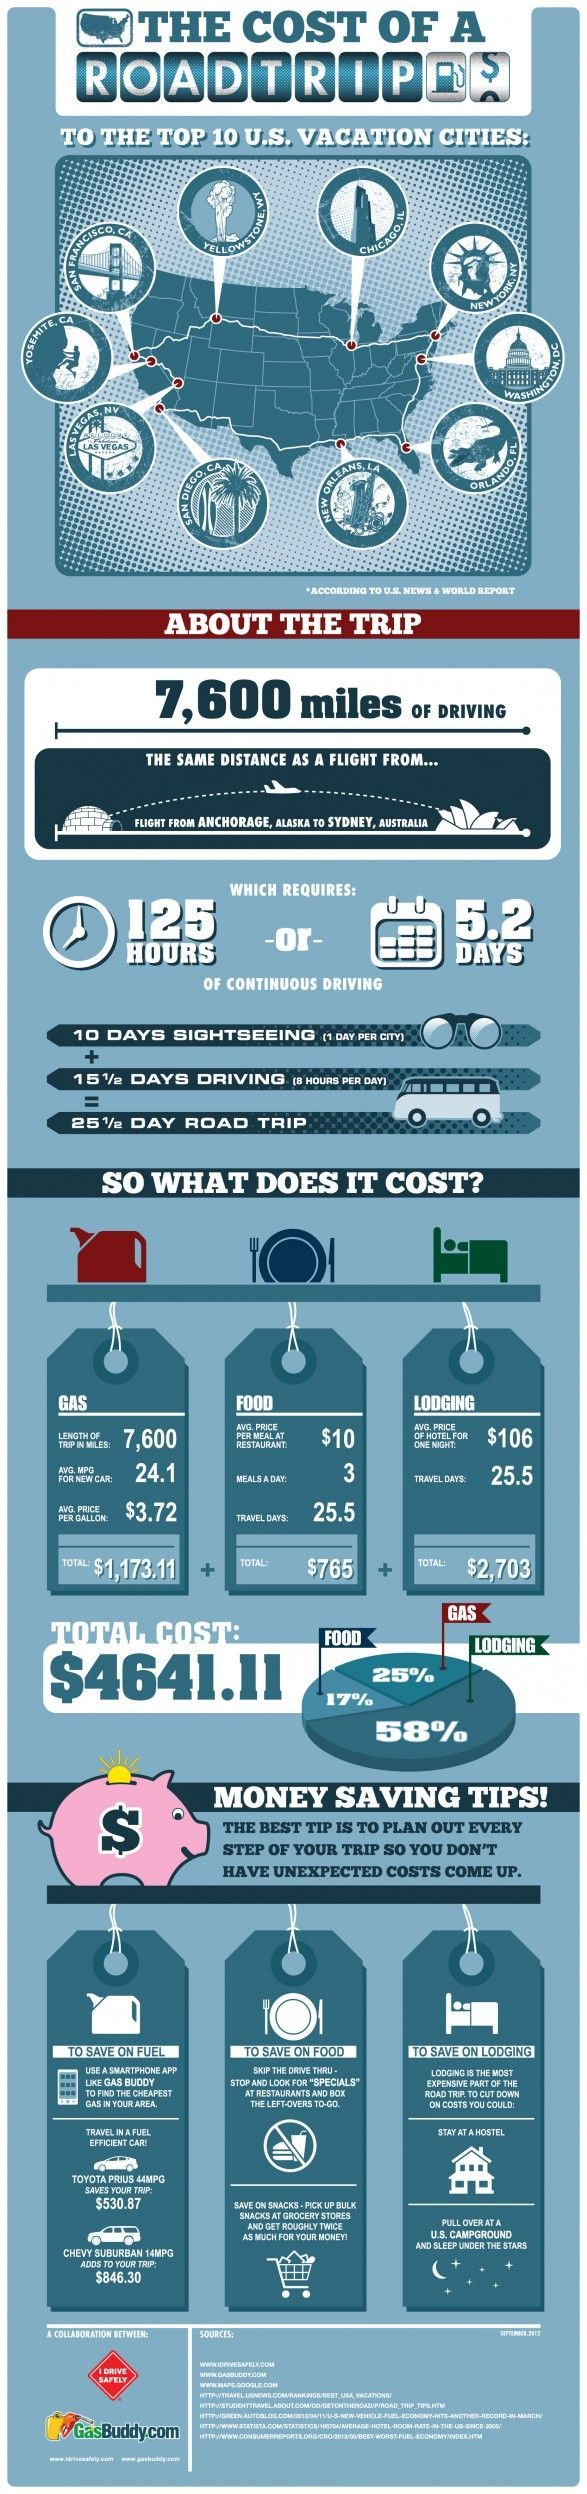 Cost of an American Road Trip- I bet I could do it for under their estimate! And there's only one way to find out.